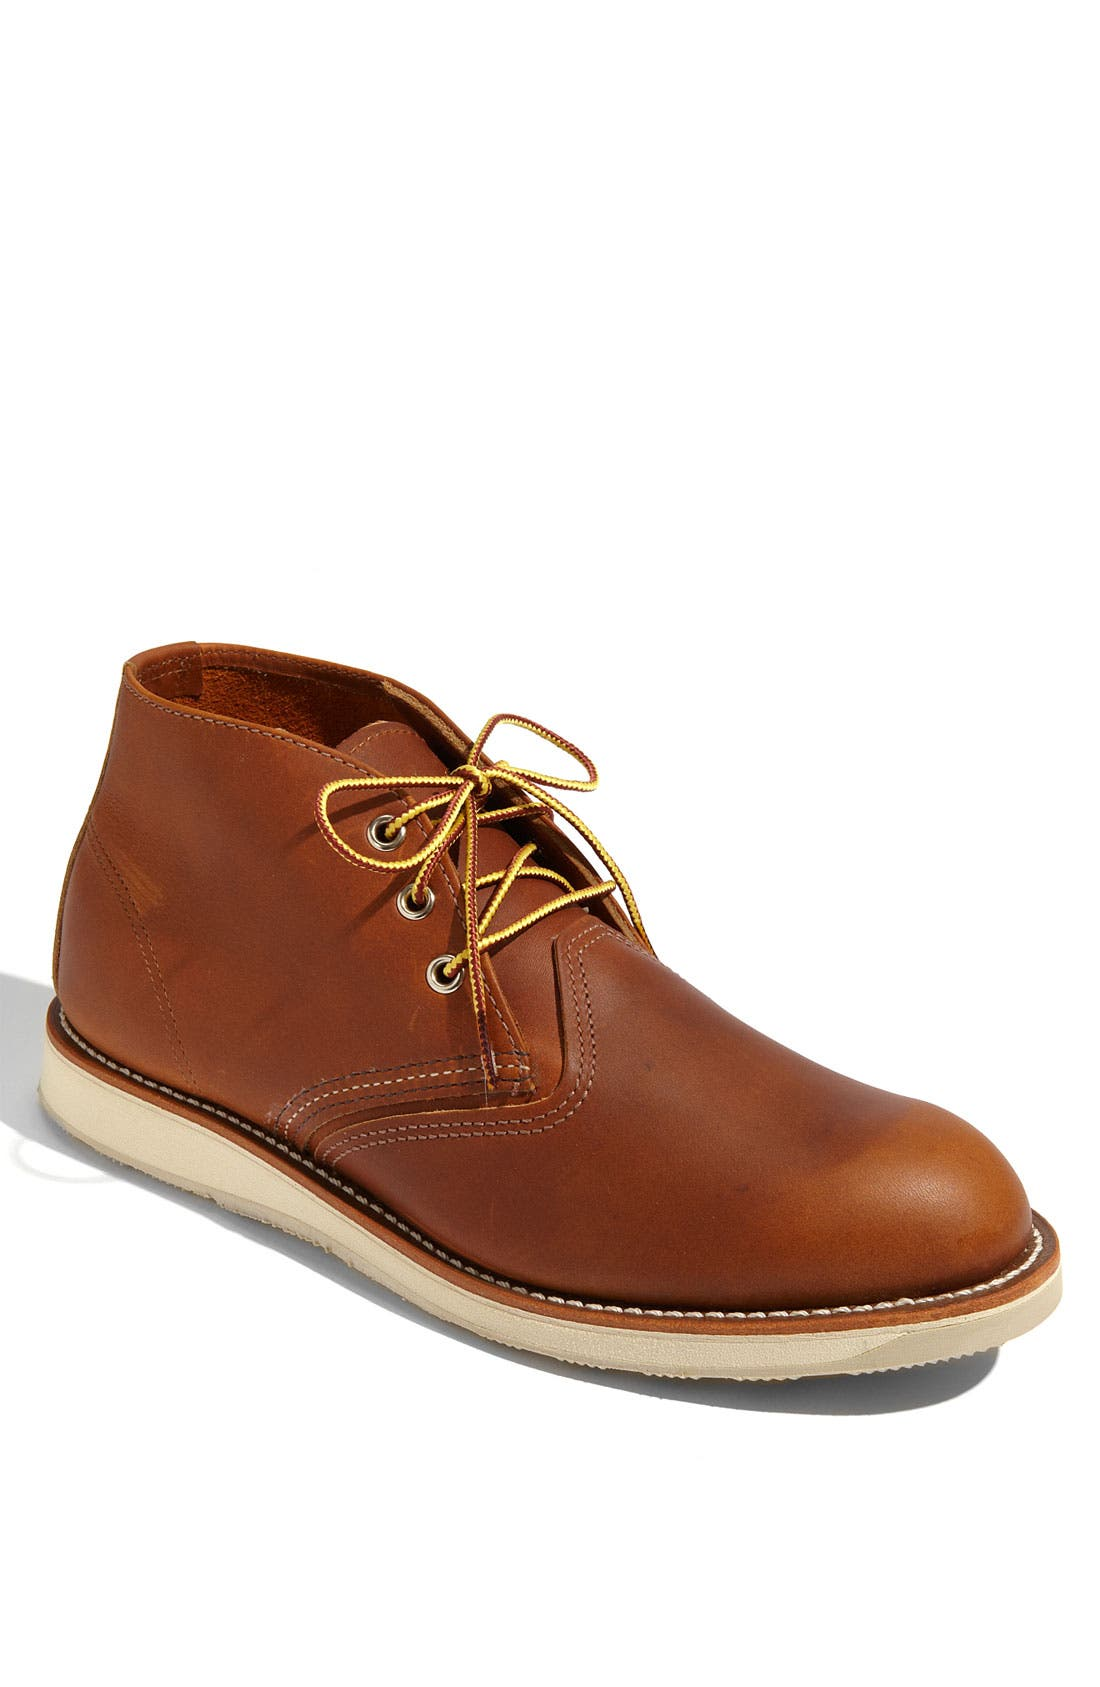 Main Image - Red Wing 'Classic' Chukka Boot (Men)